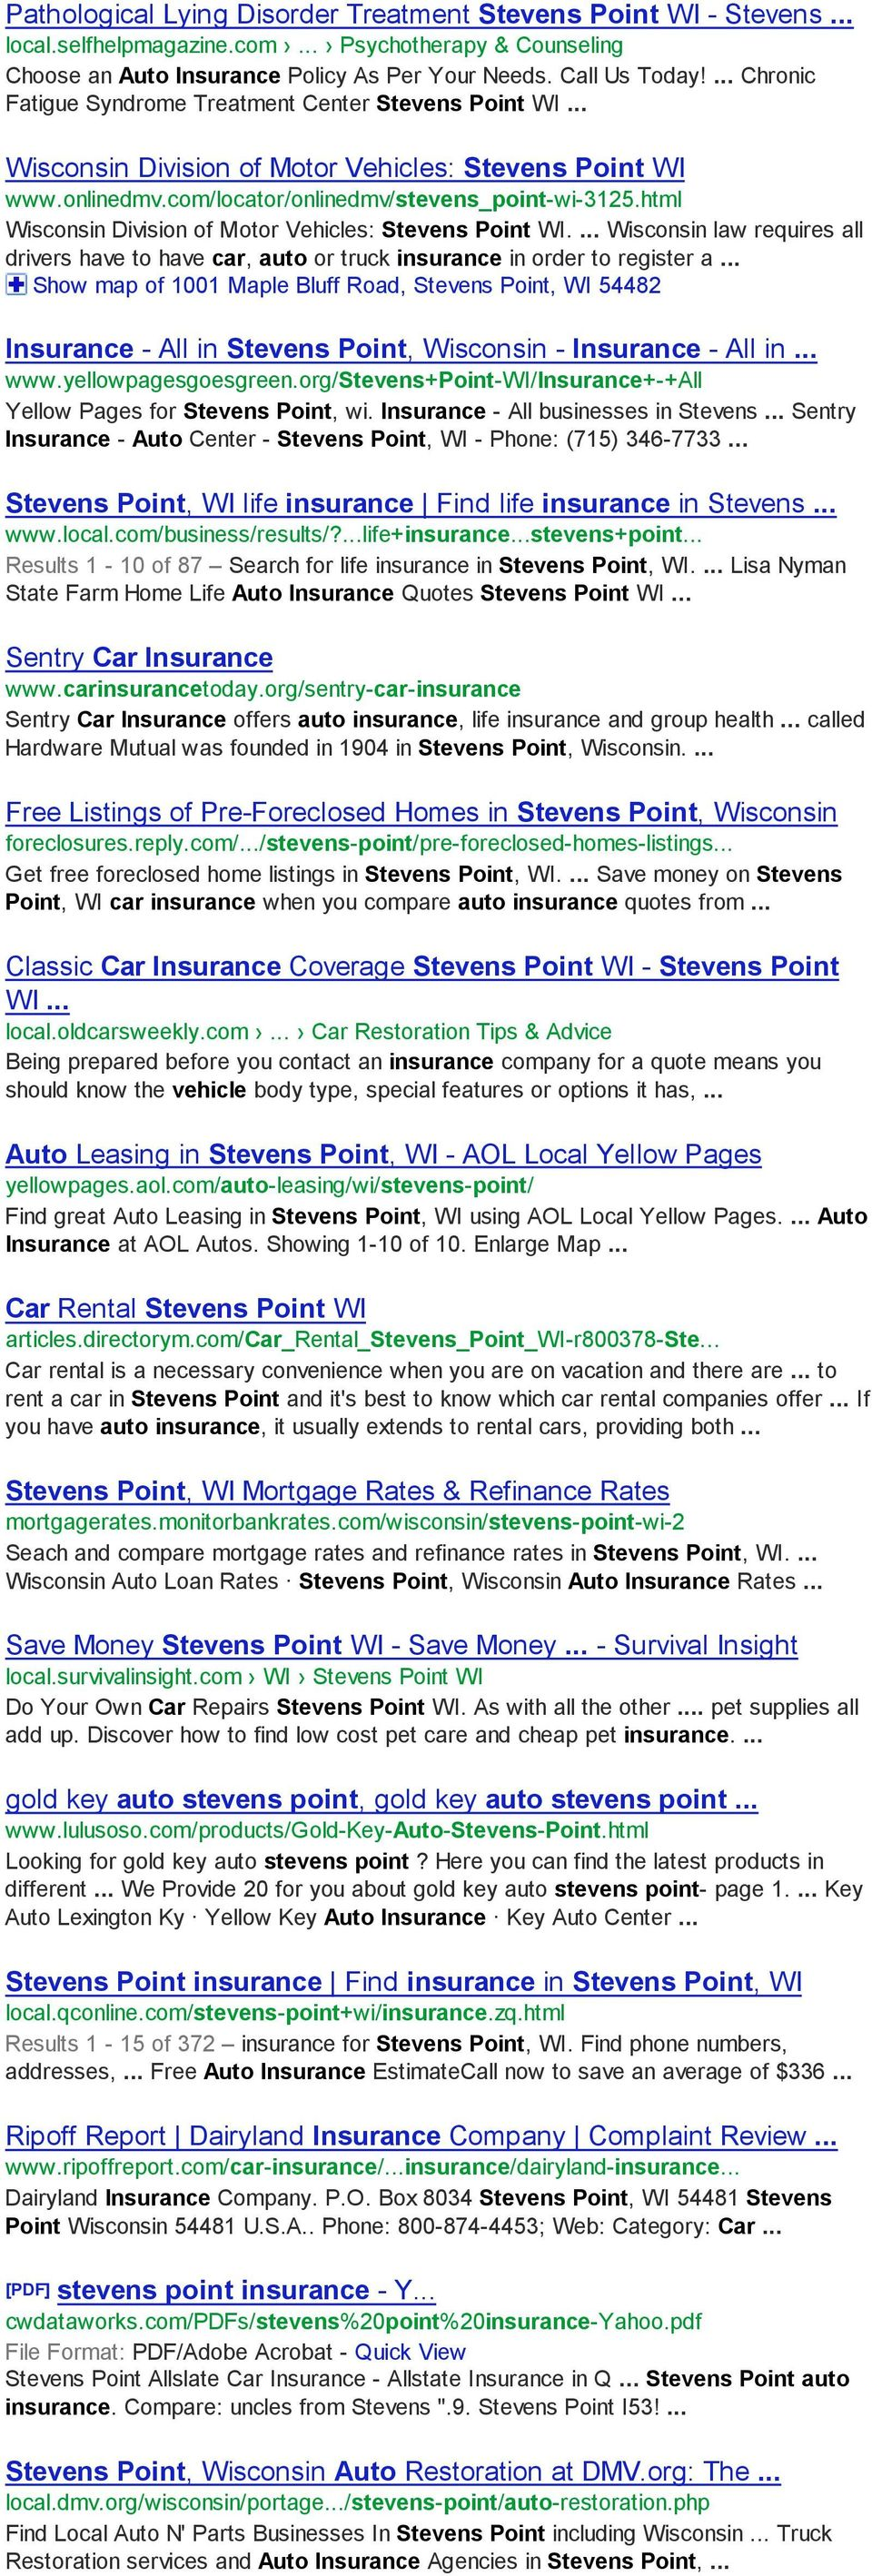 Search Stevens Point Insurance Places For Auto Insurance Near - Show car insurance companies